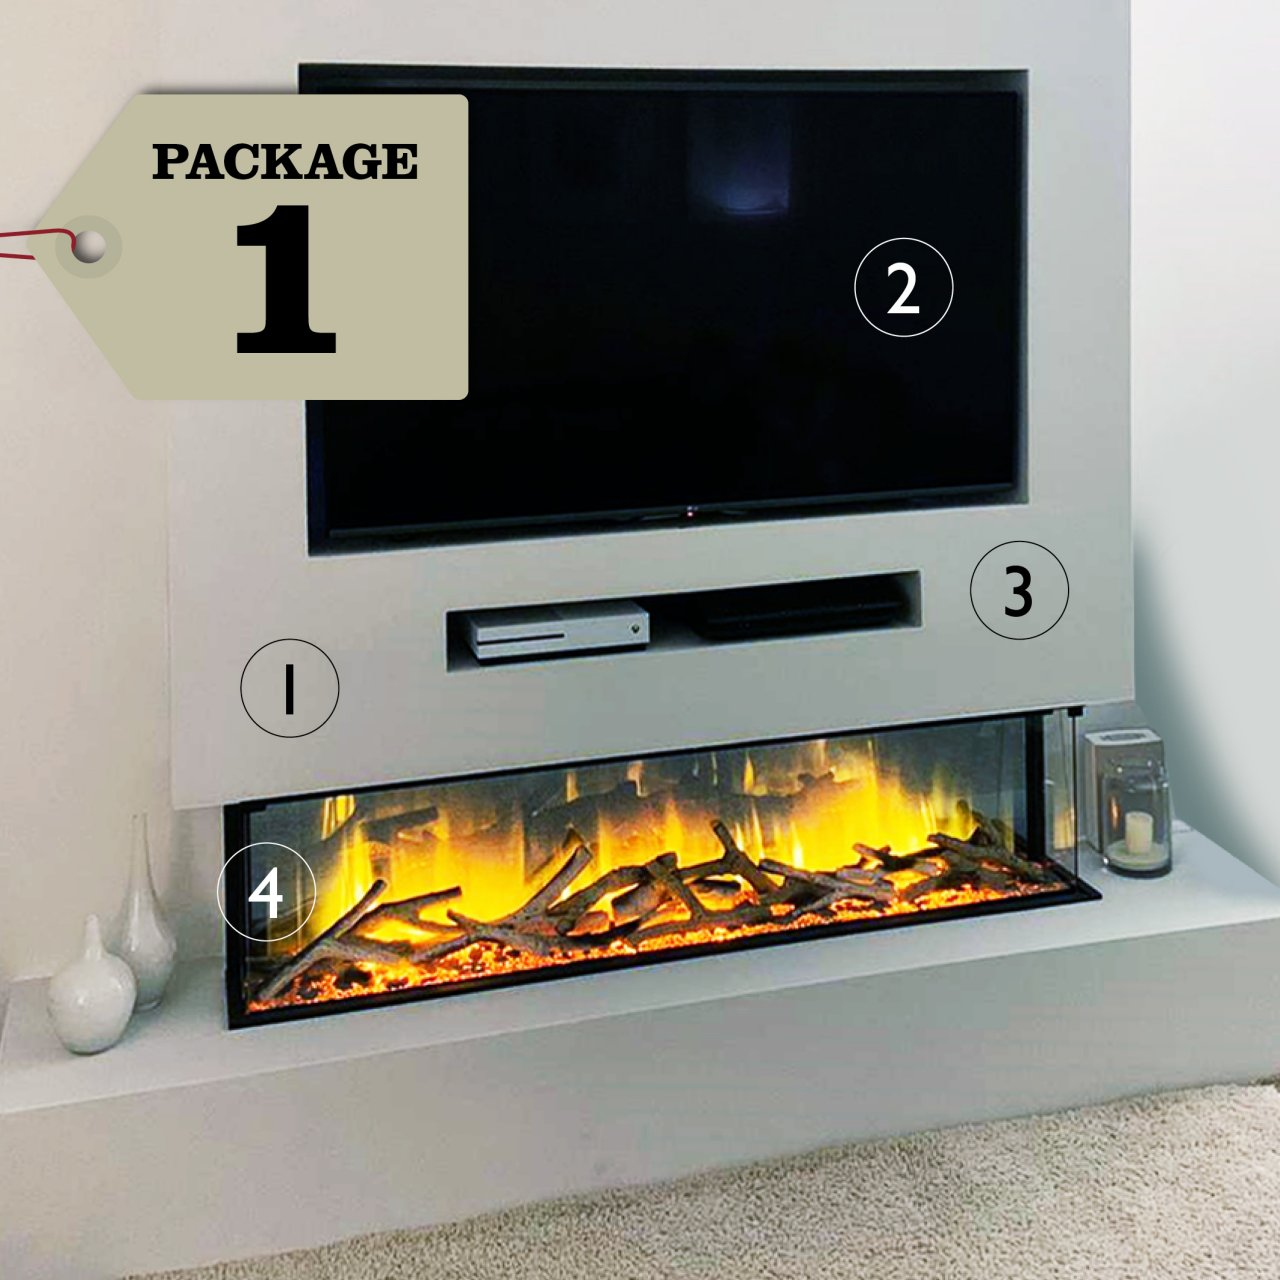 Media Wall & Fireplace Package Offer 20   Includes UK Installation ...